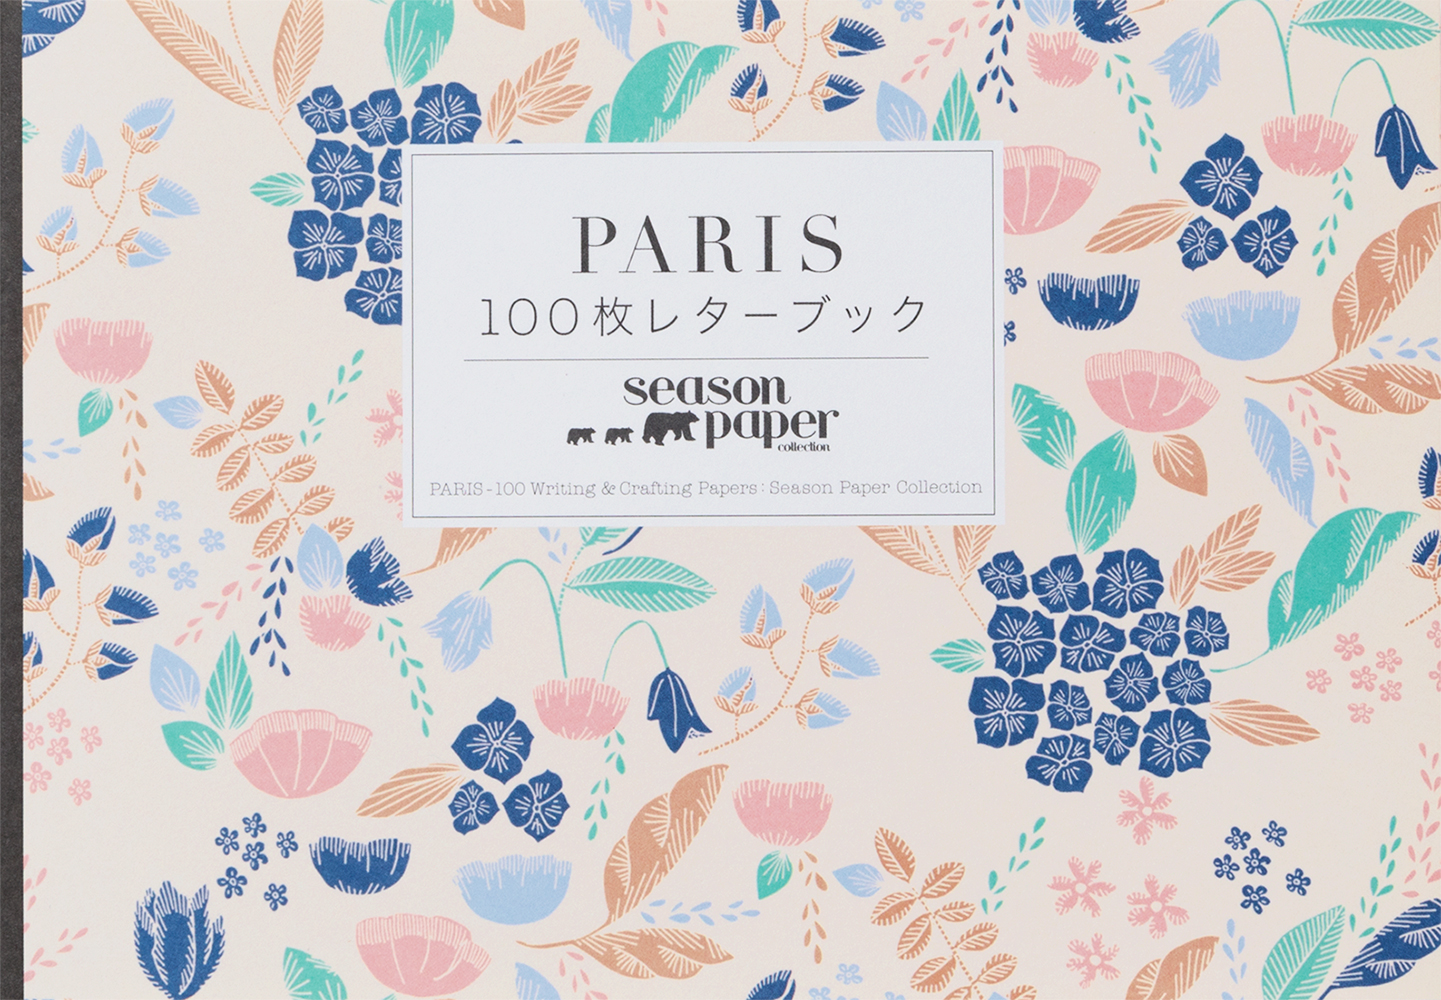 paris 100 writing crafting papers season paper collection pie international. Black Bedroom Furniture Sets. Home Design Ideas